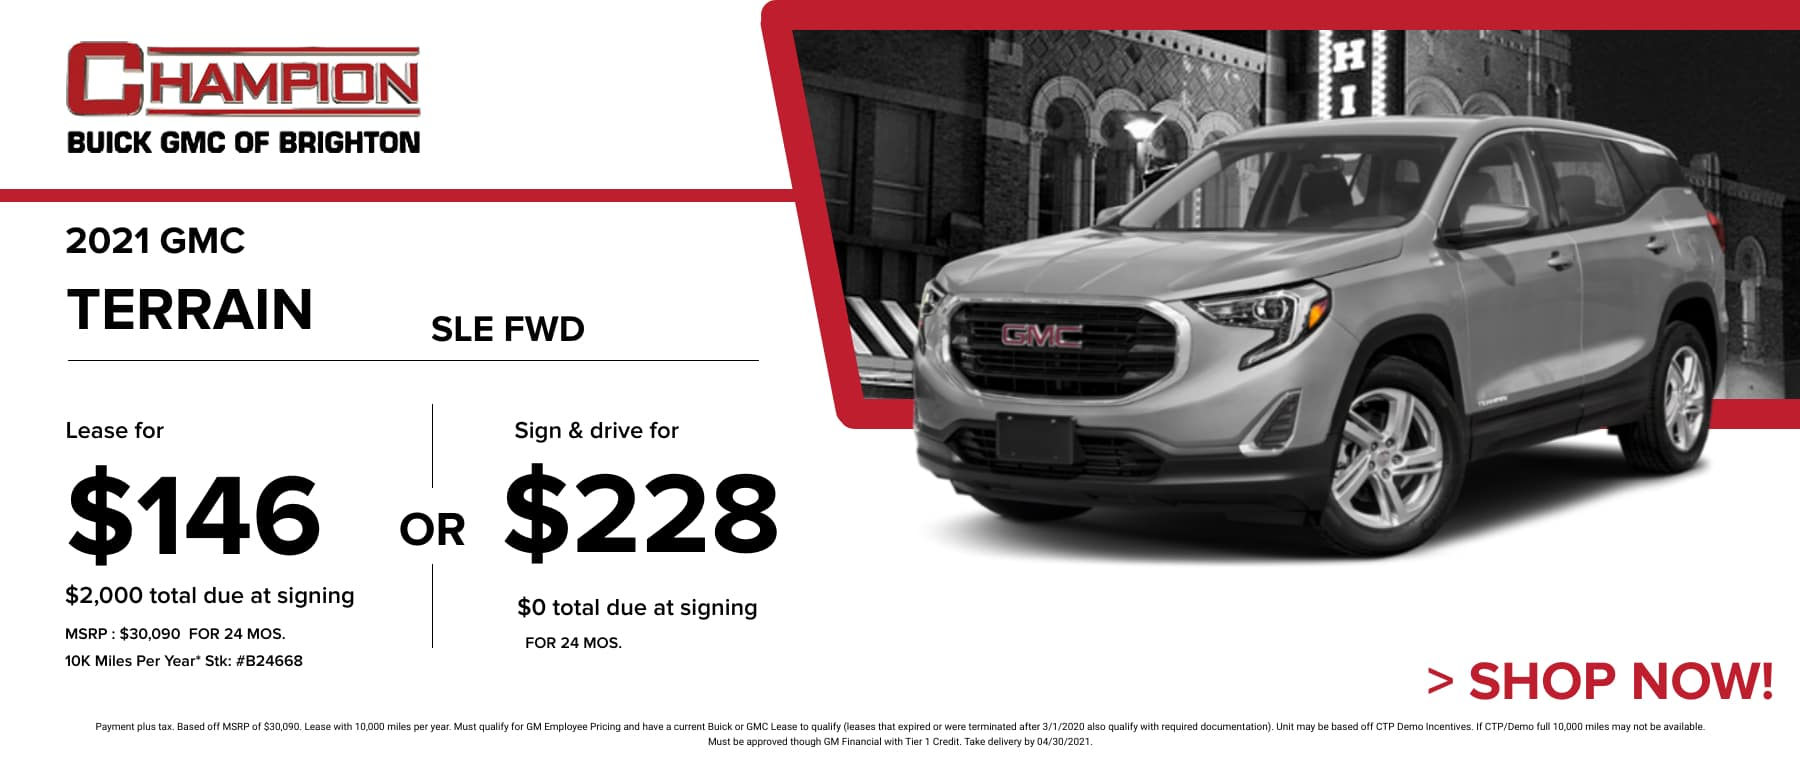 2021 GMC Terrain SLE FWD - Lease for just: $146 per month for 24 months $2,000 total due at signing. Sign & Drive for $228 per month for 24 months. *Stock #B24668. MSRP: $30,090 Payment plus tax. Based off MSRP of $30,090. Lease with 10,000 miles per year. Must qualify for GM Employee Pricing and have a current Buick or GMC Lease to qualify (leases that expired or were terminated after 3/1/2020 also qualify with required documentation). Unit may be based off CTP Demo Incentives. If CTP/Demo full 10,000 miles may not be available. Must be approved though GM Financial with Tier 1 Credit. Take delivery by 04/30/2021